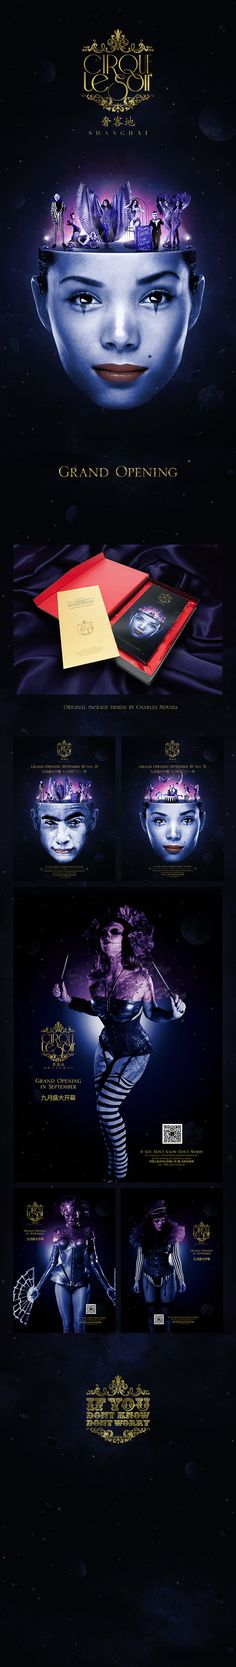 Cirque le Soir invited me to design the visuals for their grand opening in Shanghai, including posters, flyers, newspaper ads and VIP invitations...